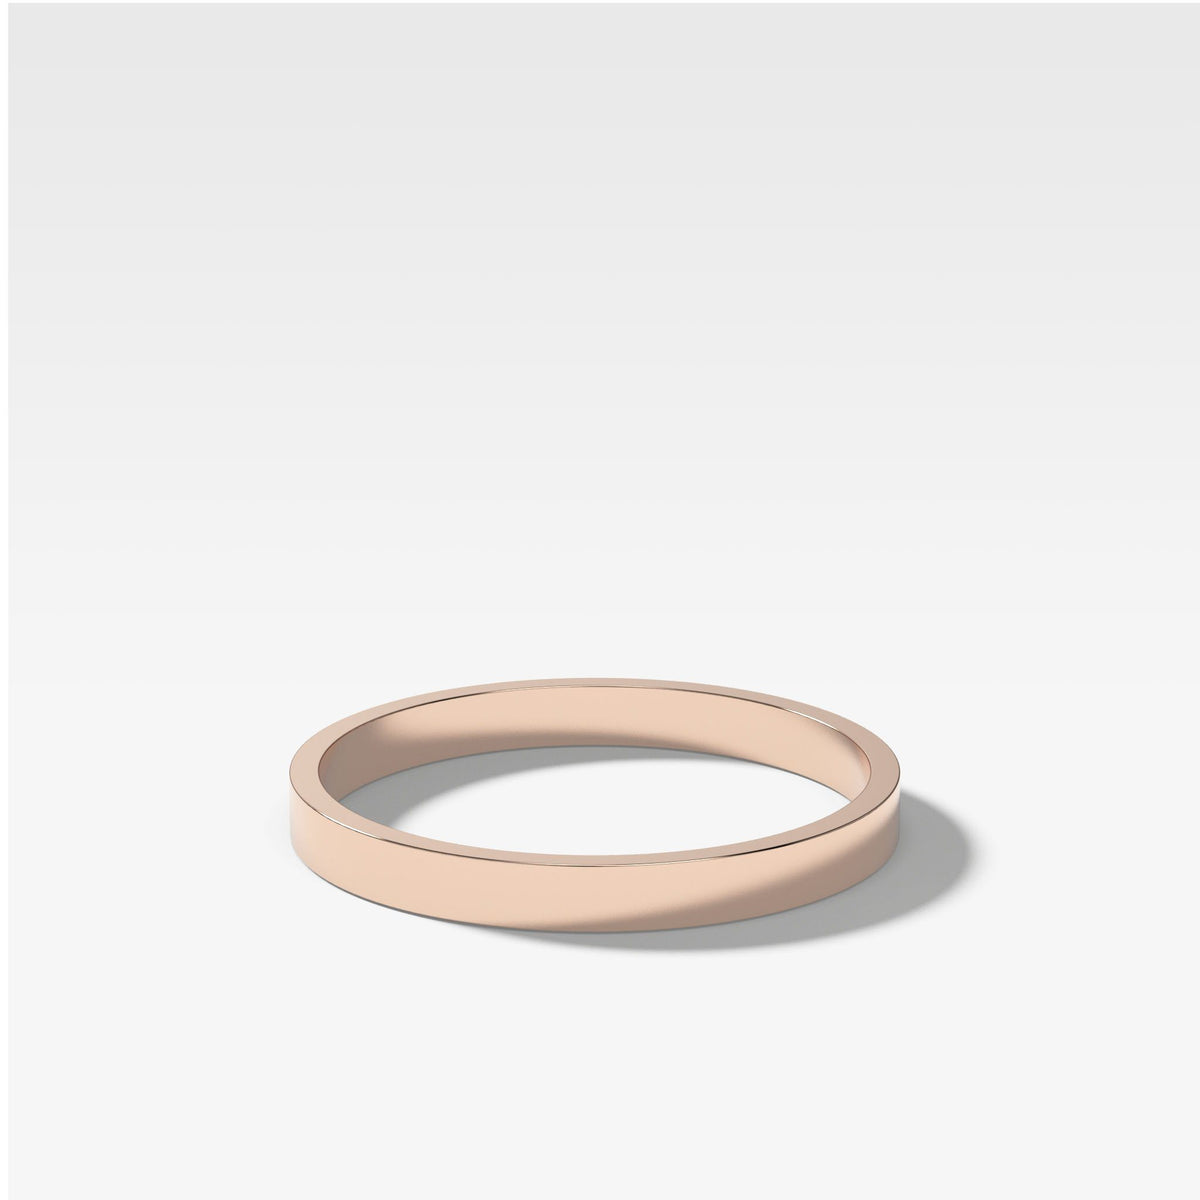 Finest Band (2Mm) In Rose Gold By Good Stone